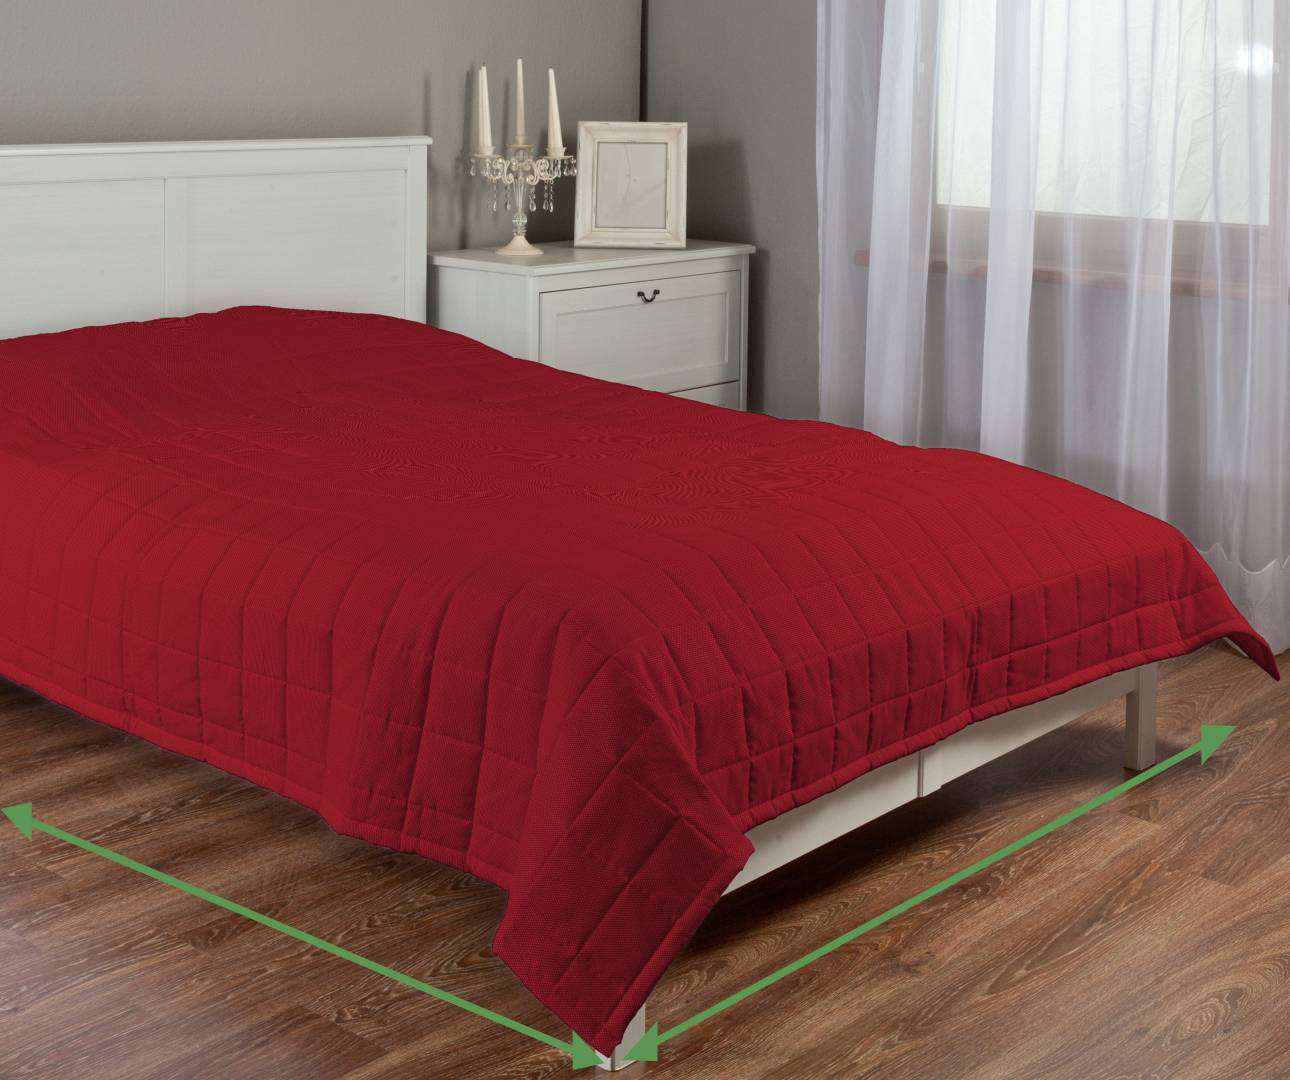 Quilted throw (check quilt pattern) in collection Etna , fabric: 705-60